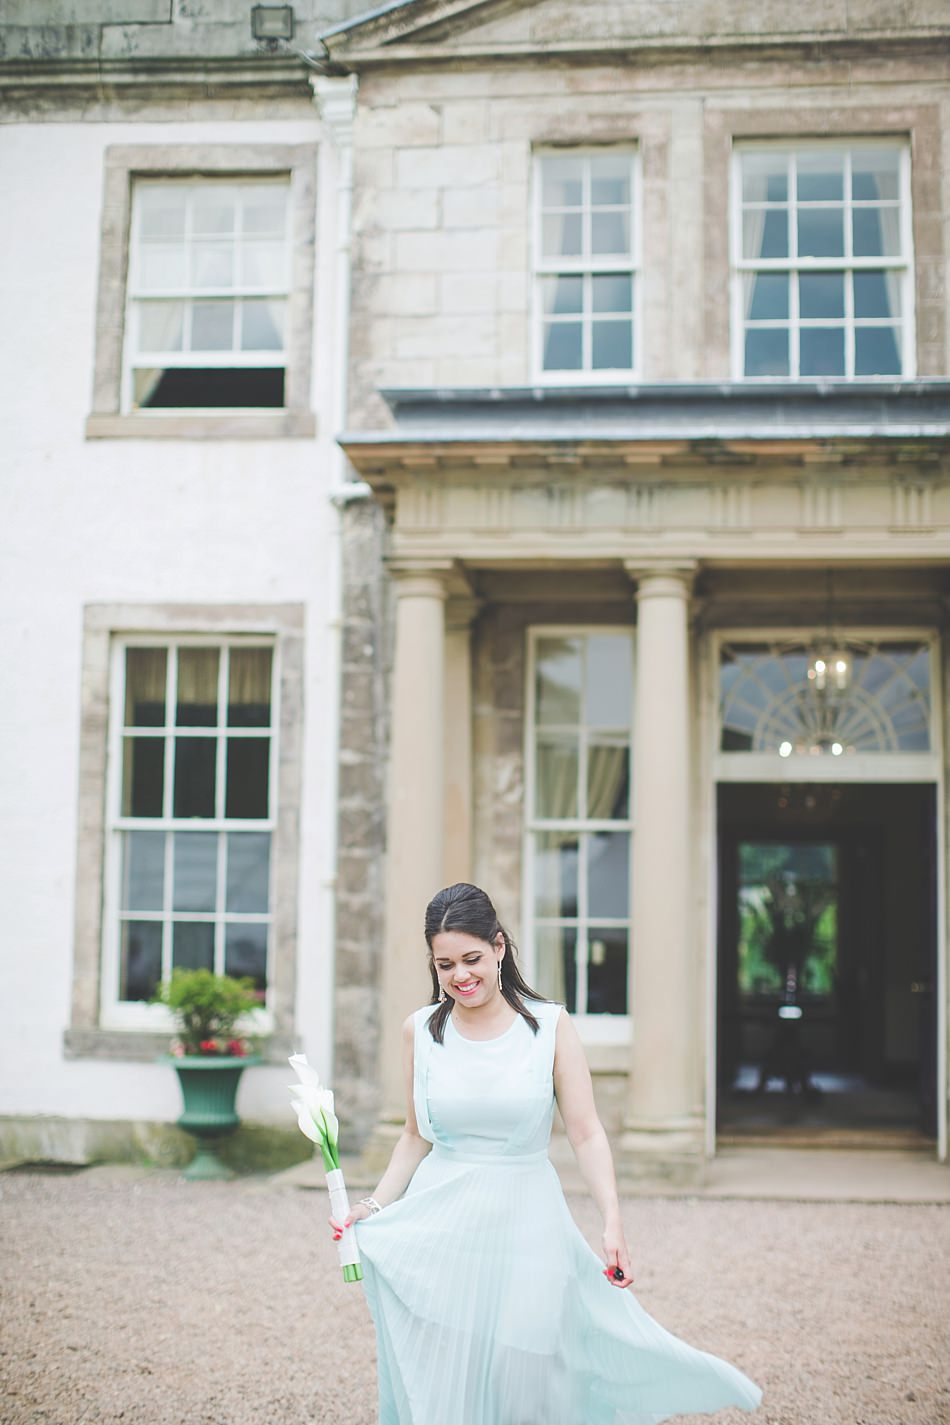 natural fine art wedding photographers scotland 12-1.jpg